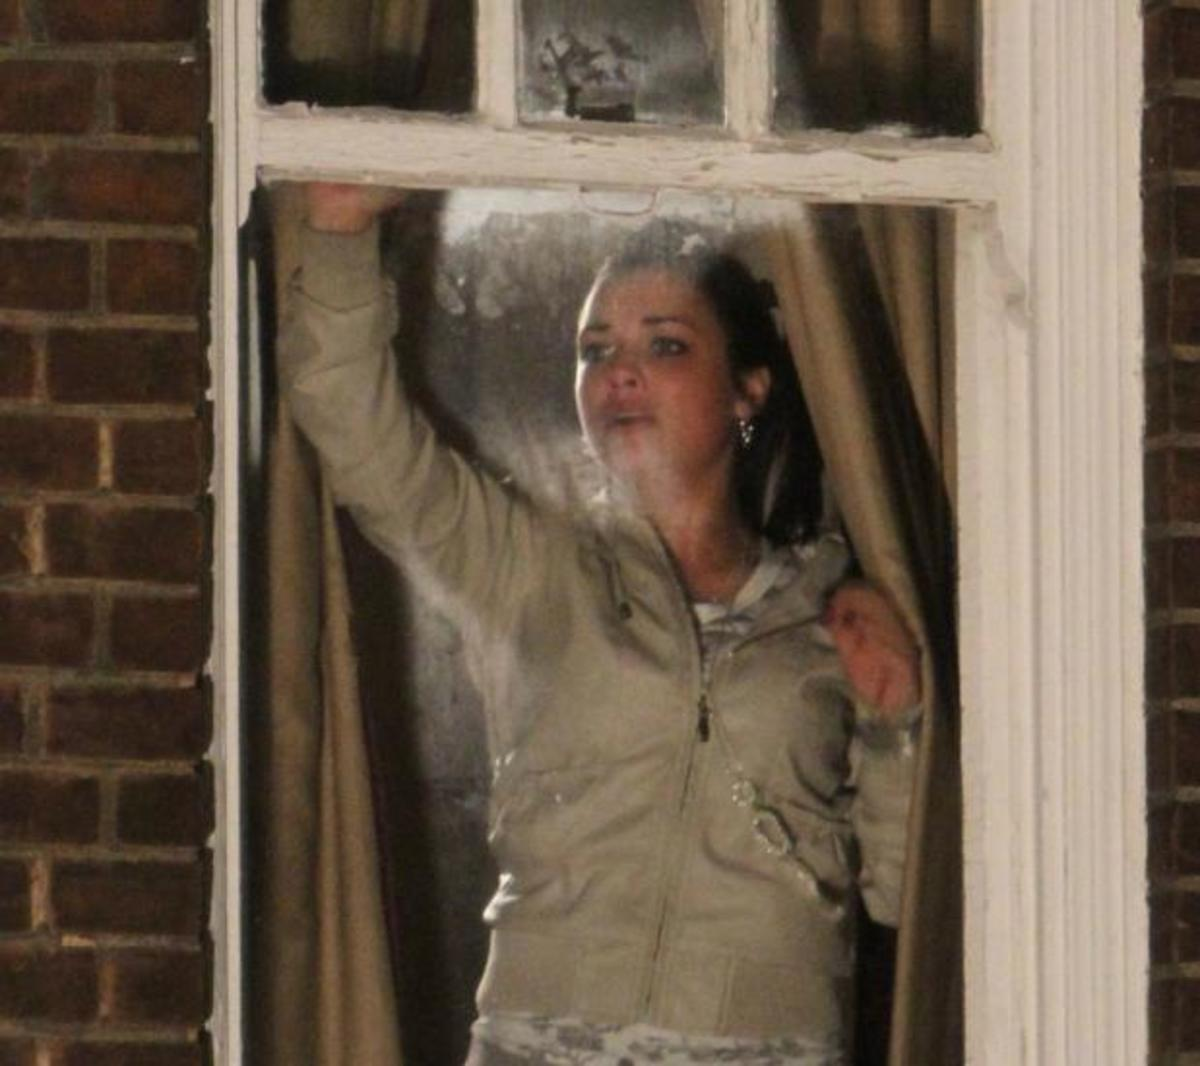 while at the party a scared Whitney desperately searches for an escape route